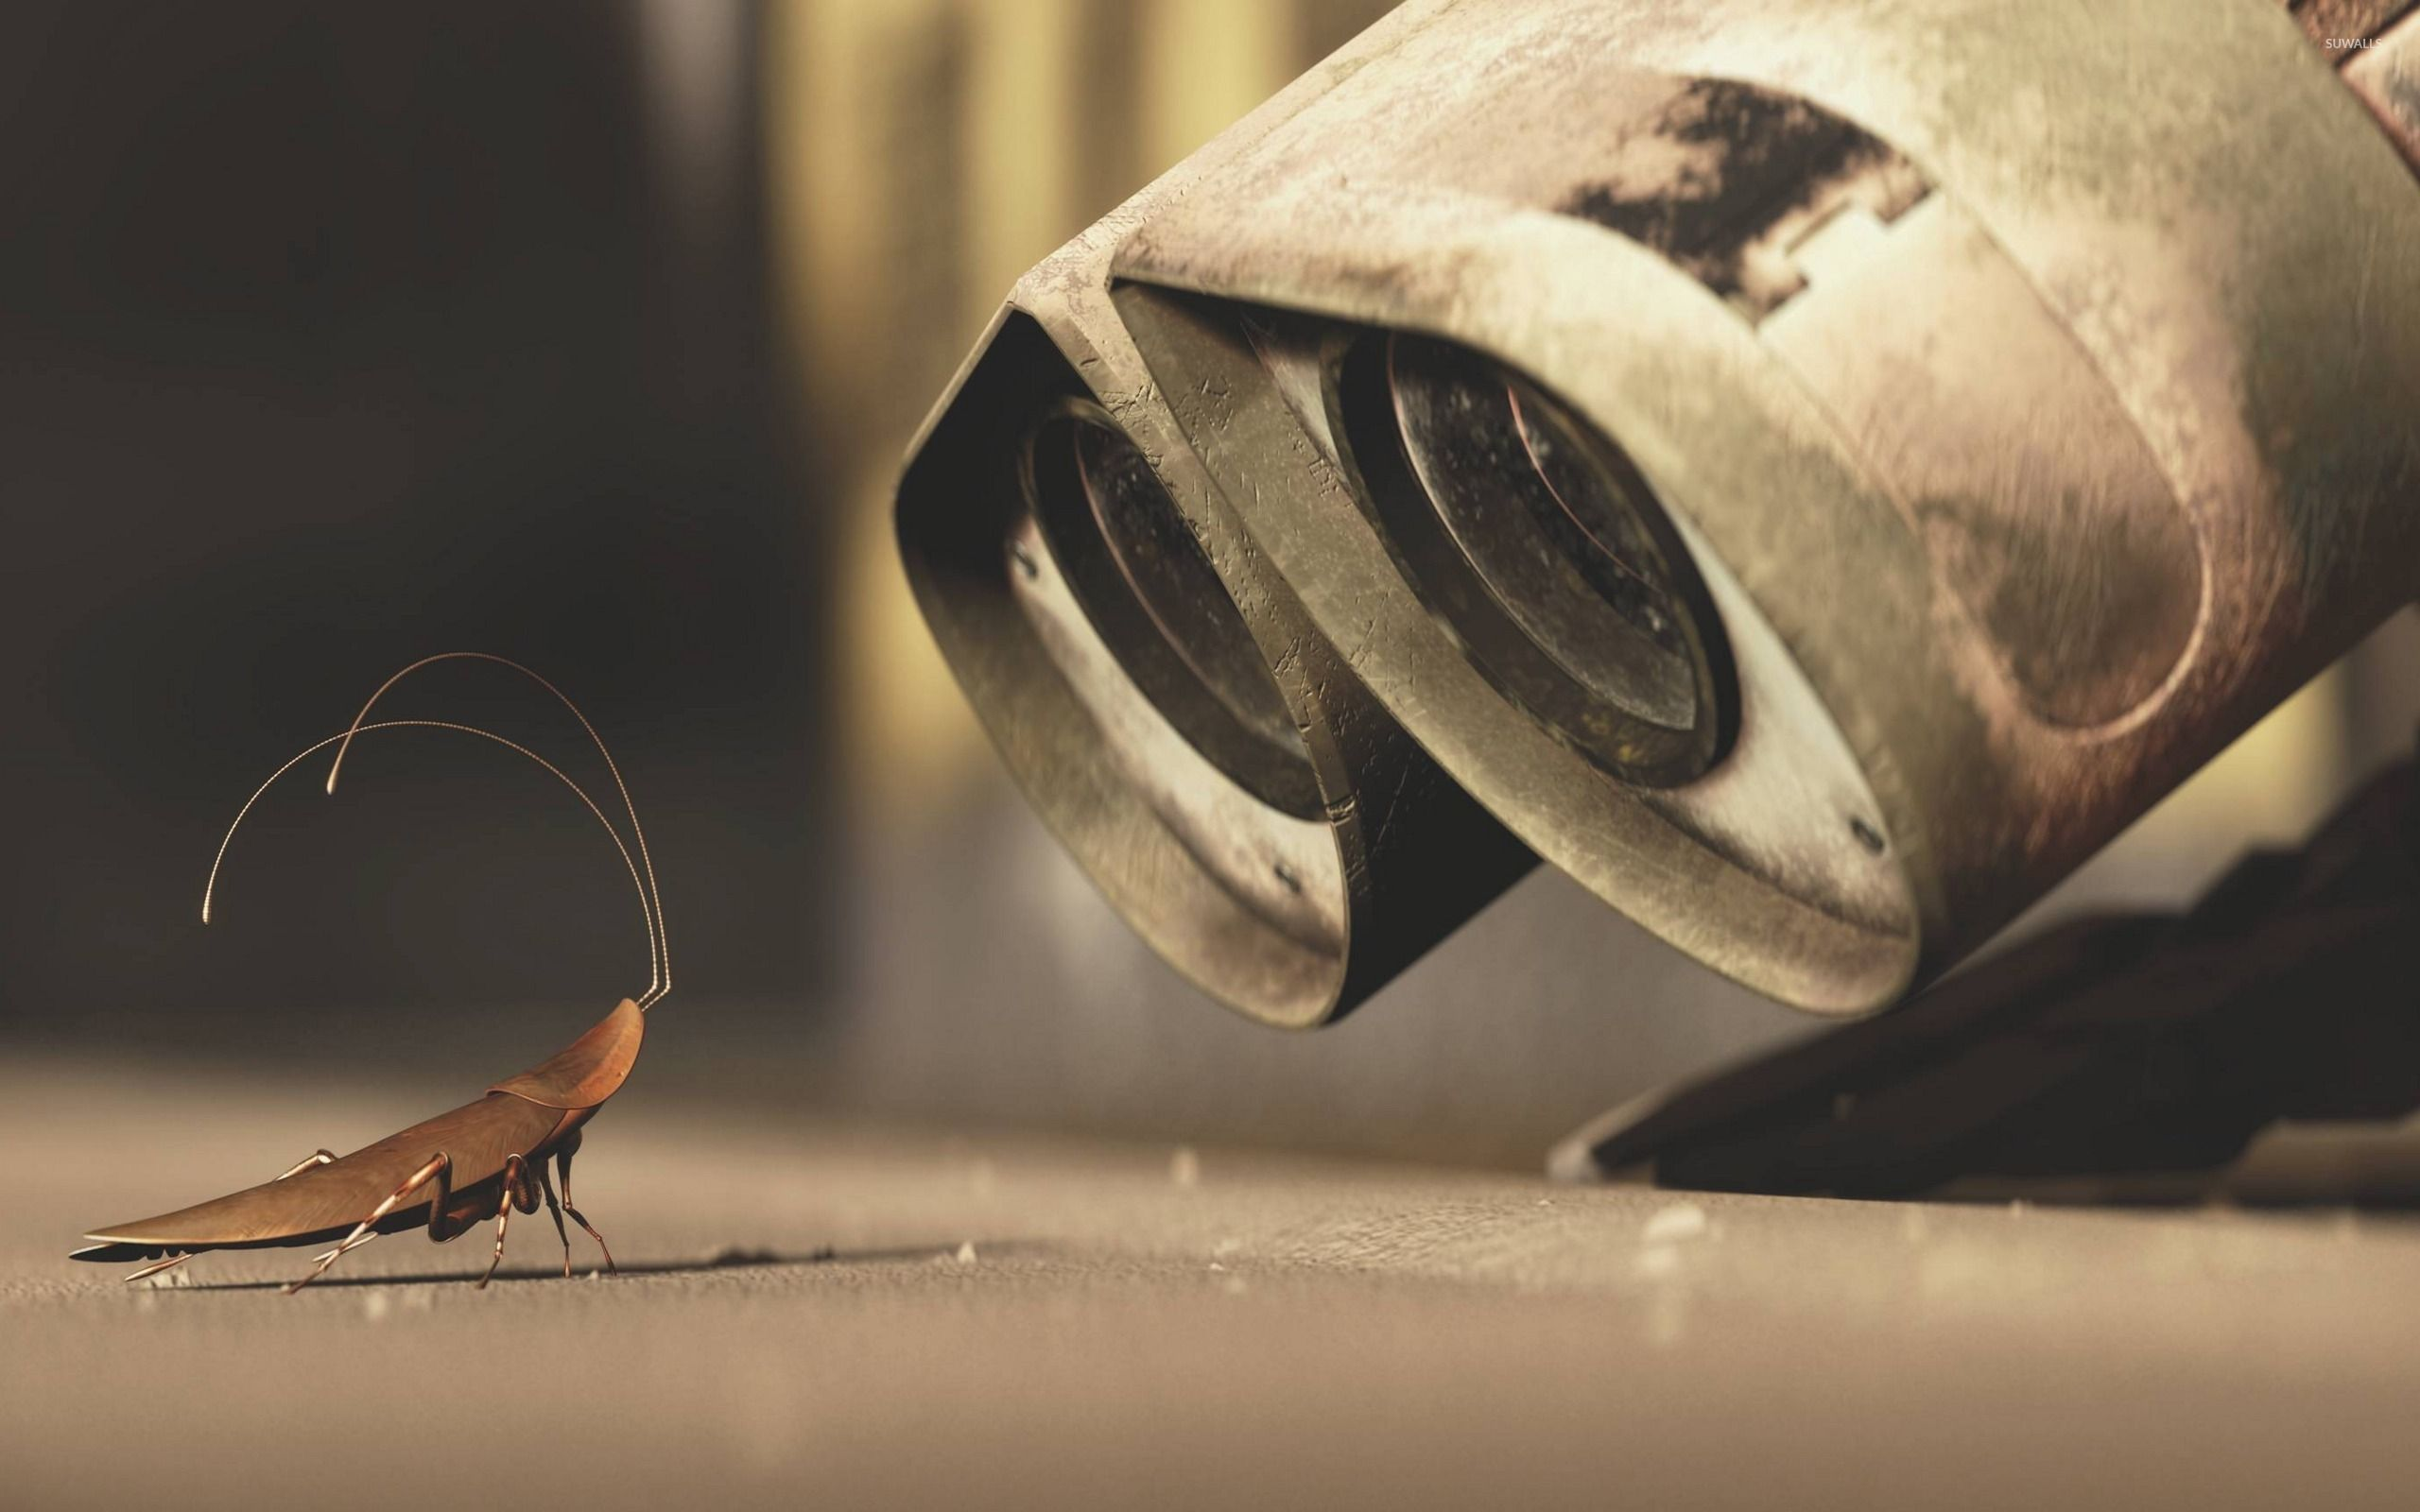 wall e desktop wallpaper 4k